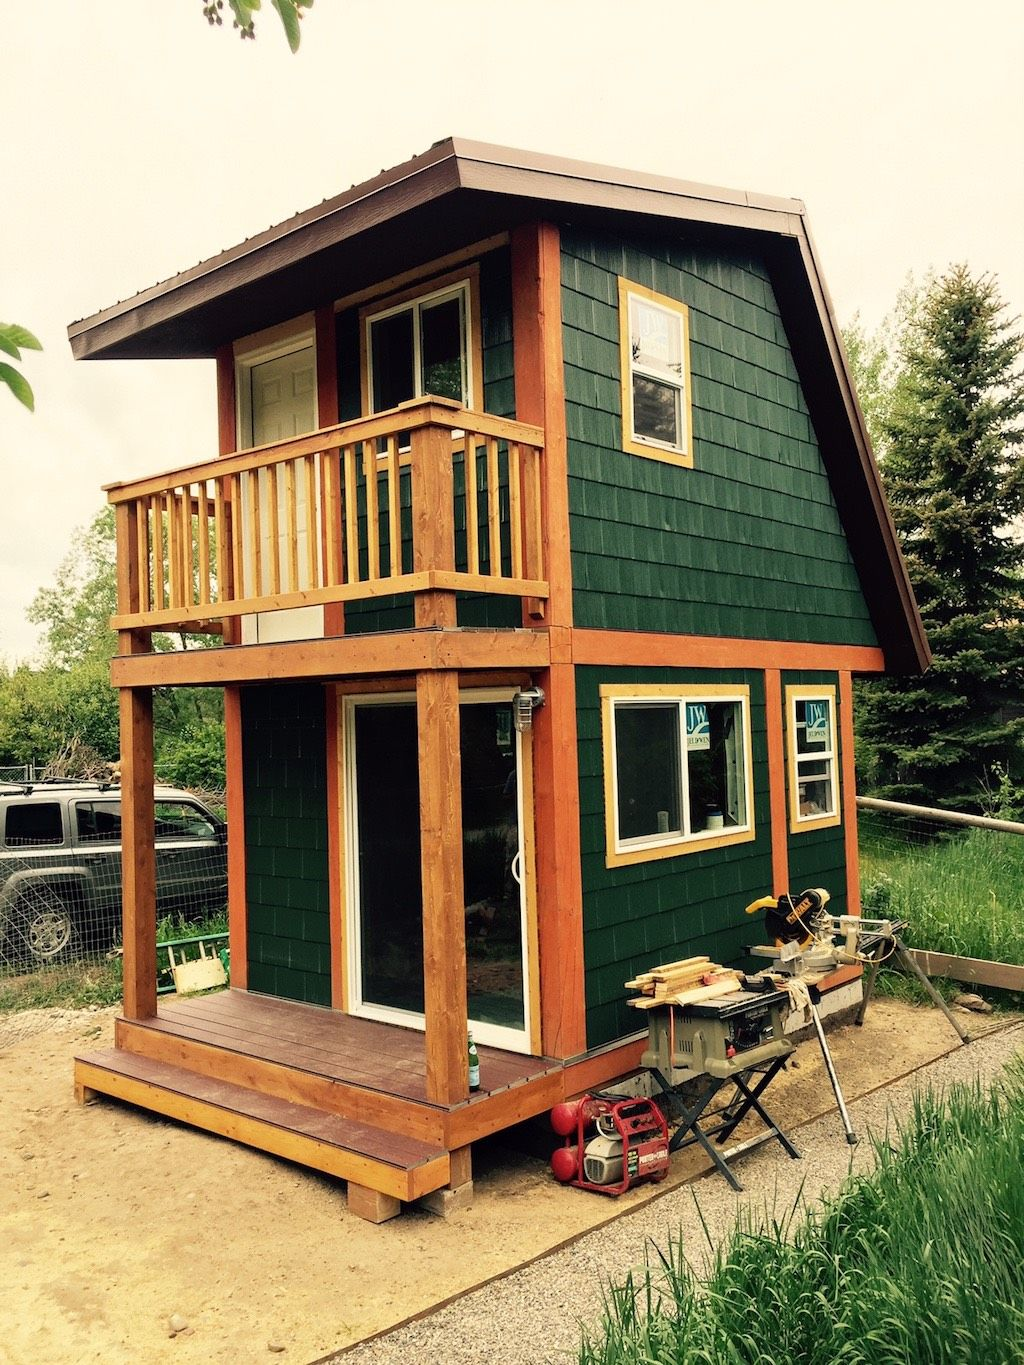 Tiny House With Two Stories Amazing Structure In Such A